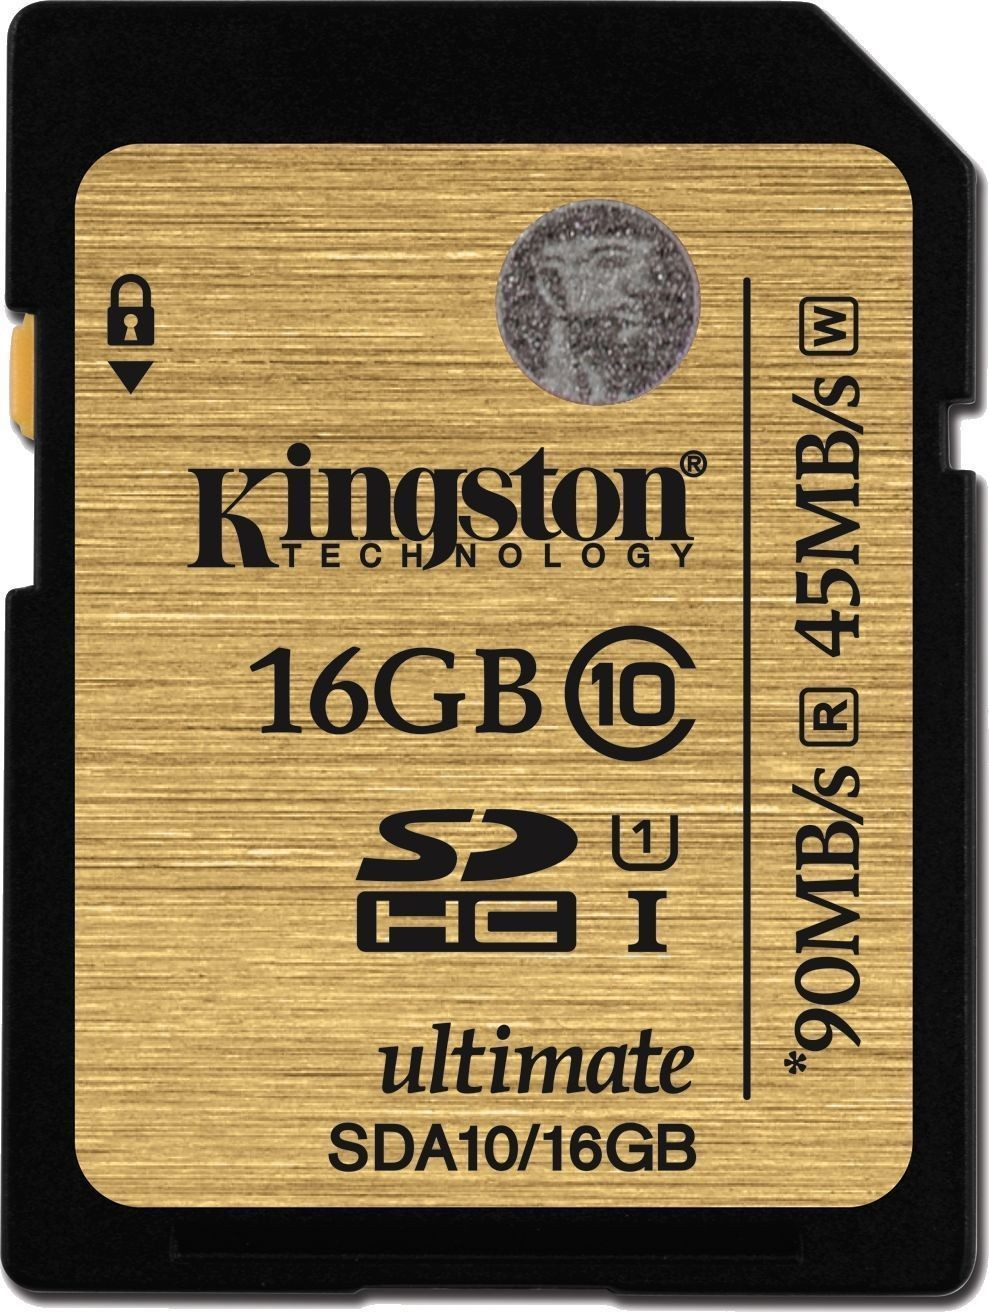 KINGSTON 16GB SDXC Memory Card